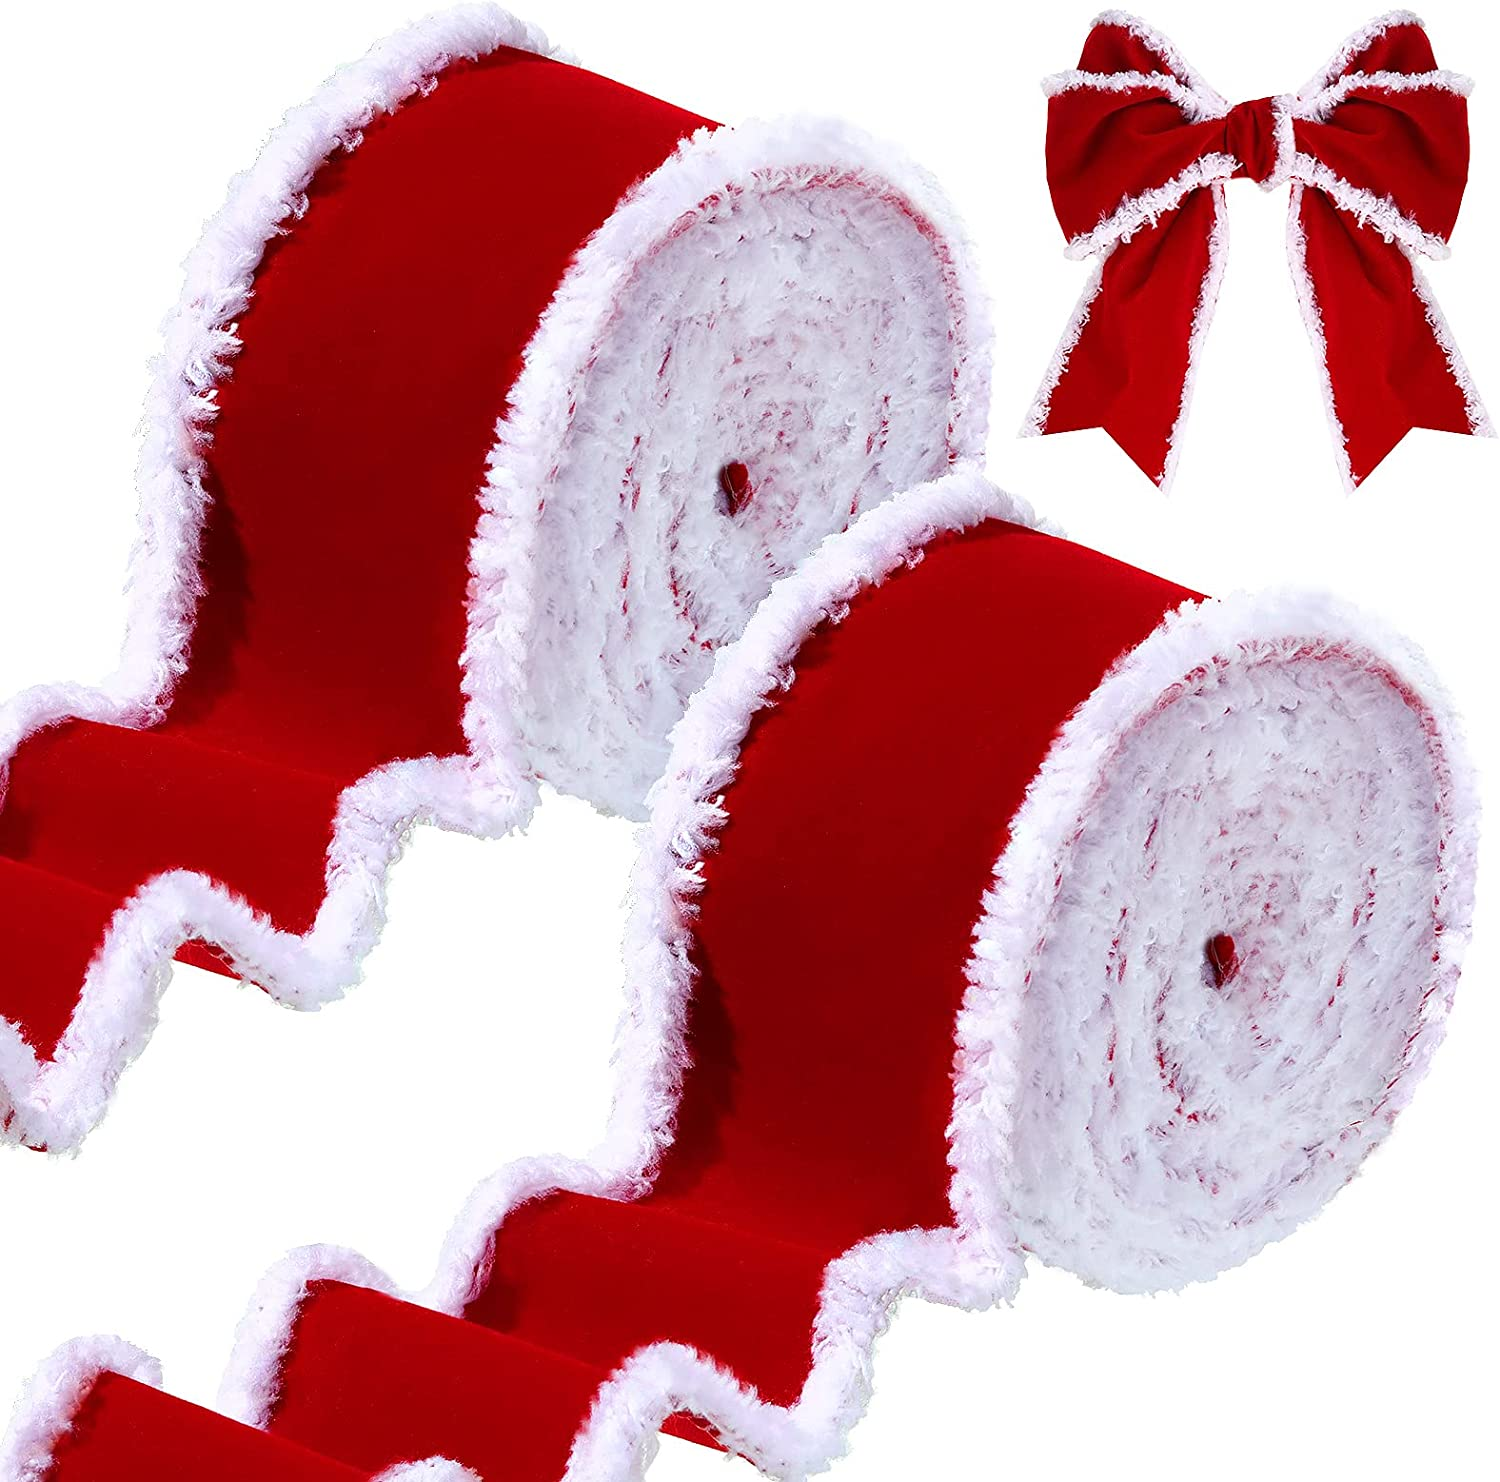 2 Rolls Christmas Velvet Ribbons White and Red Decorative Ribbons Rolls Craft DIY Ribbon Fabric Cloth Ribbon Wire Edge Ribbons for Craft Christmas Festivals Decoration : Arts, Crafts & Sewing